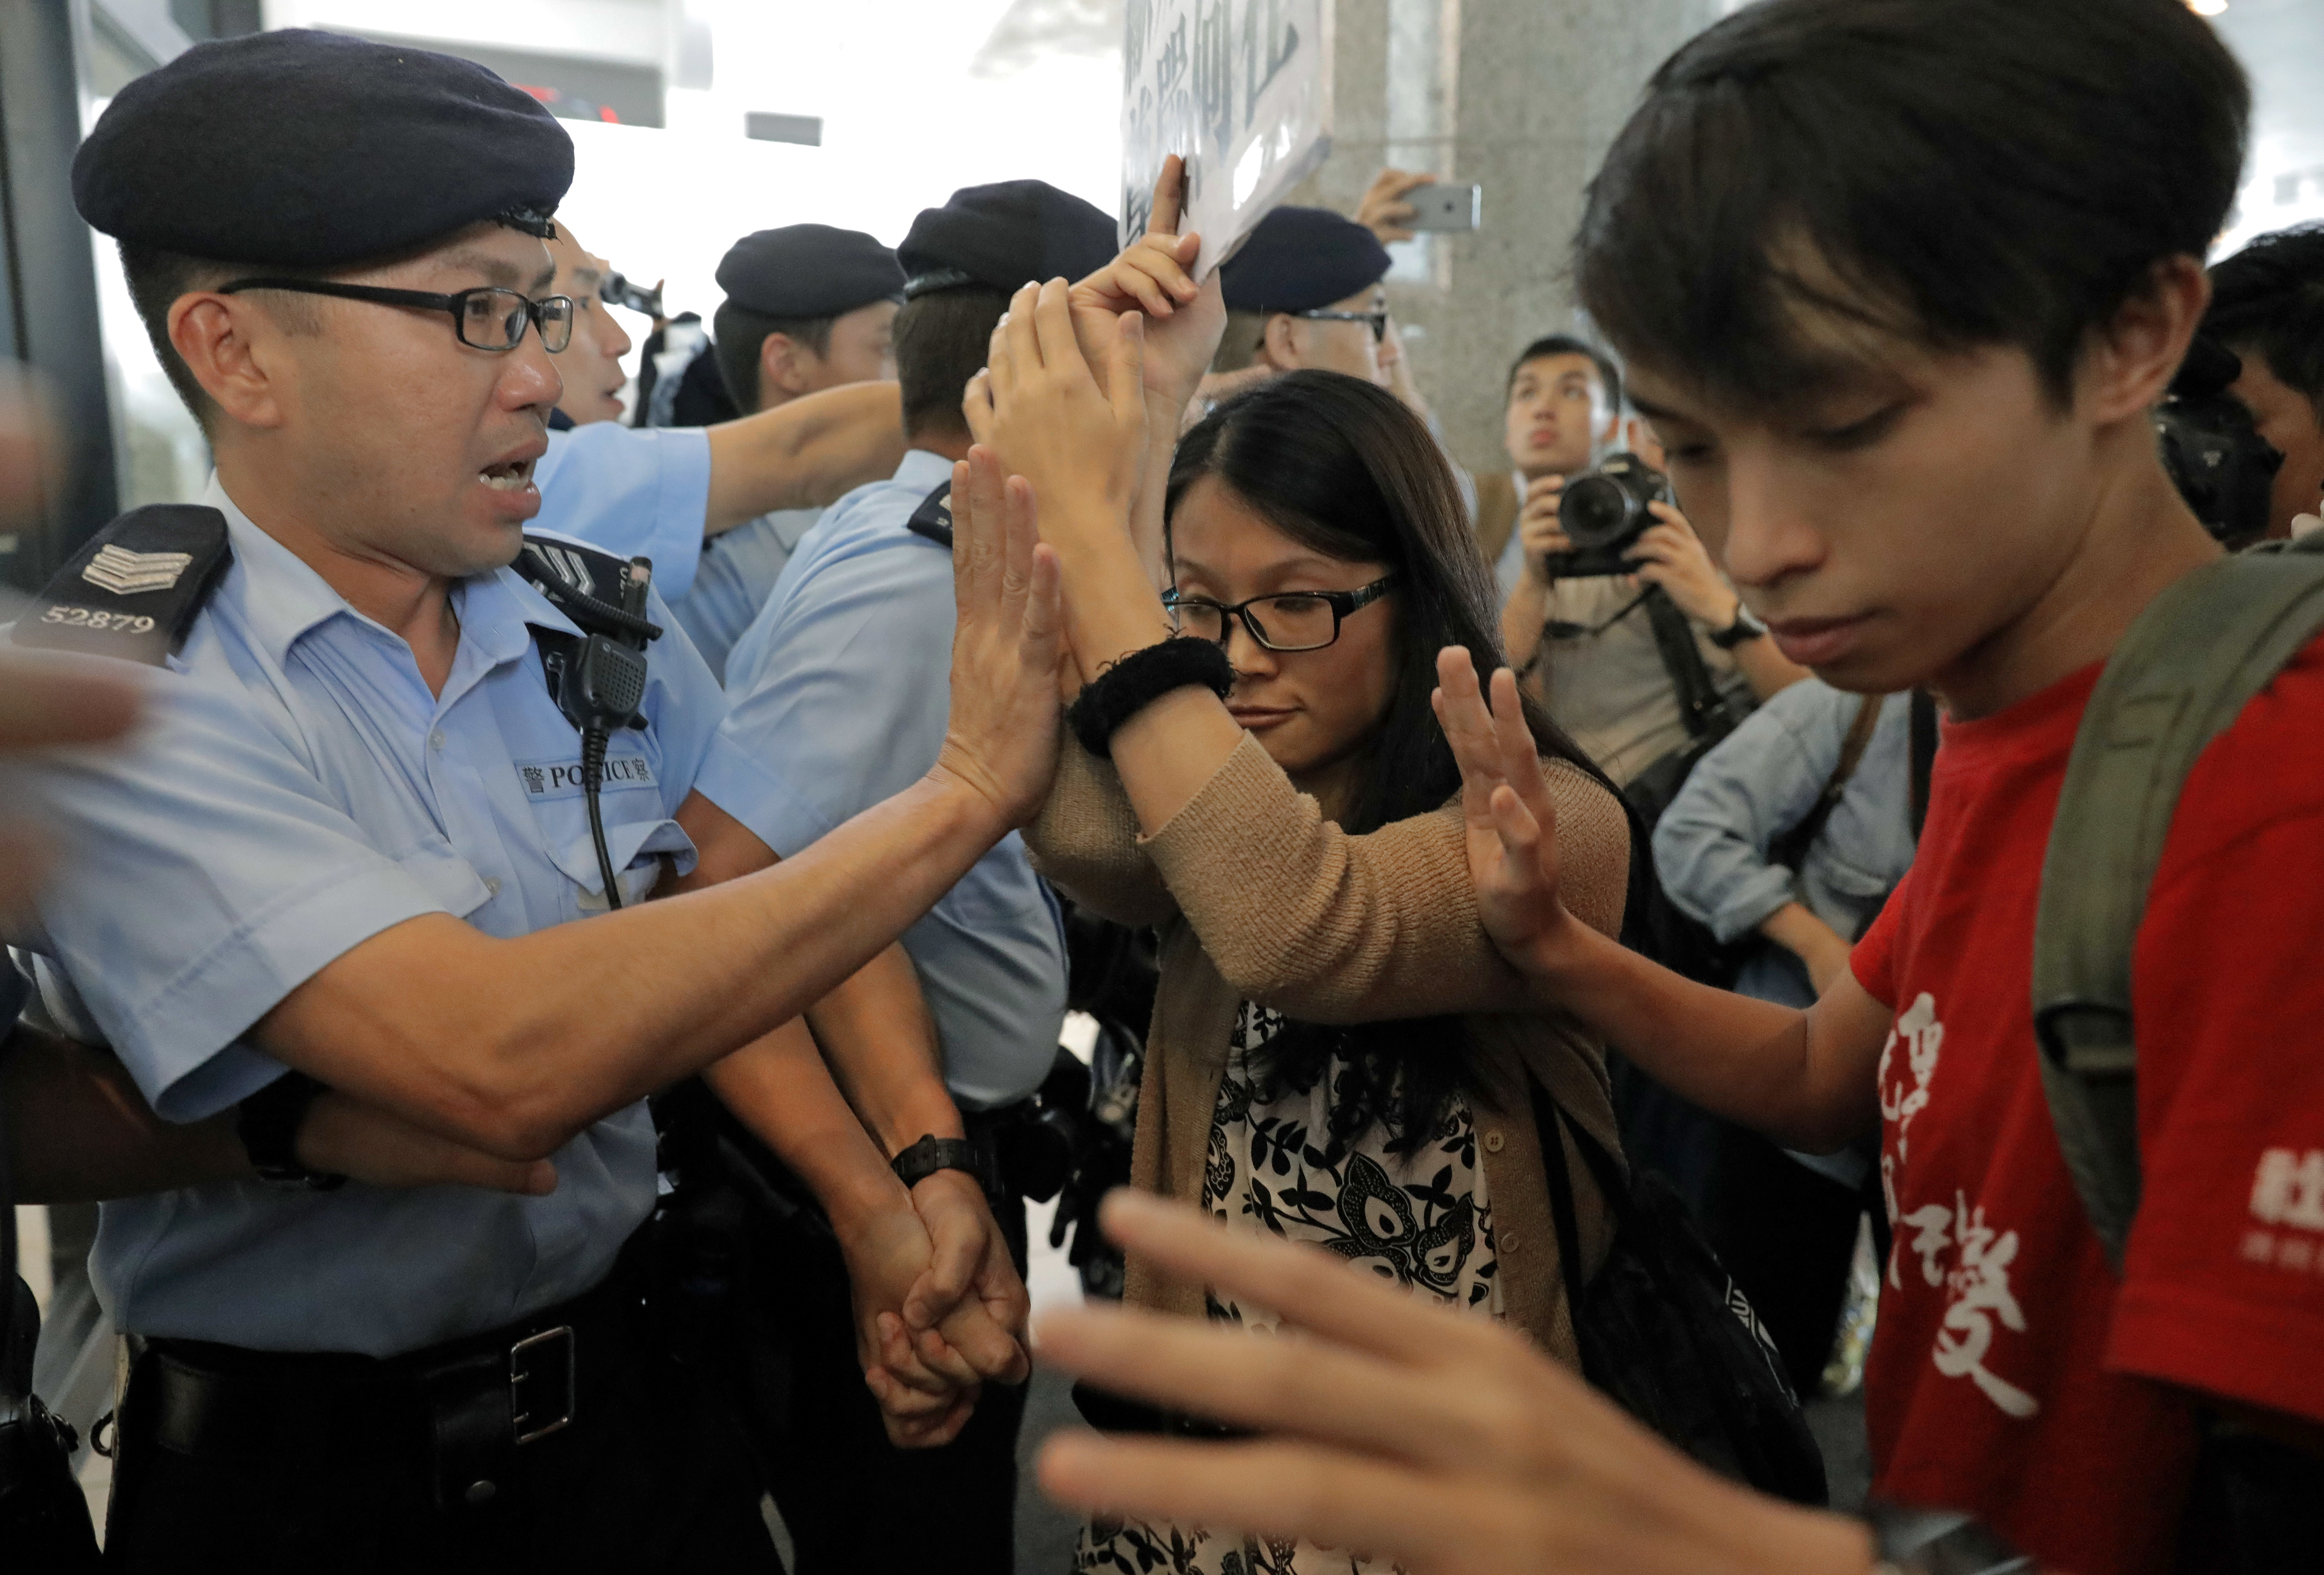 Protesters scuffle with police officers as they protest at the Thai consulate in Hong Kong on Oct. 5, 2016, after Thailand stopped teen pro-democracy activist Joshua Wong from entering the country